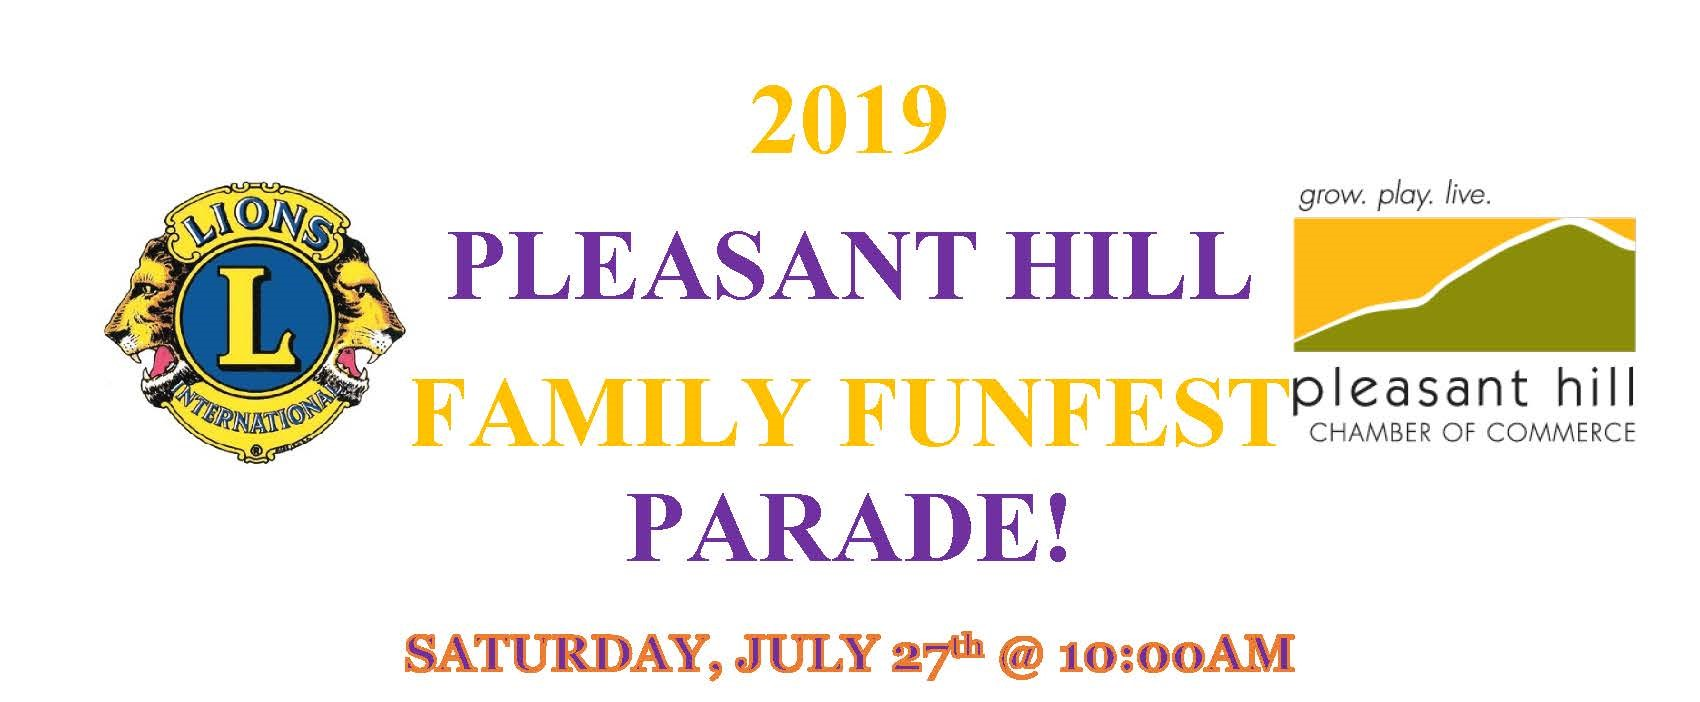 Pleasant Hill Chamber of Commerce : News & Events : 2019 Family